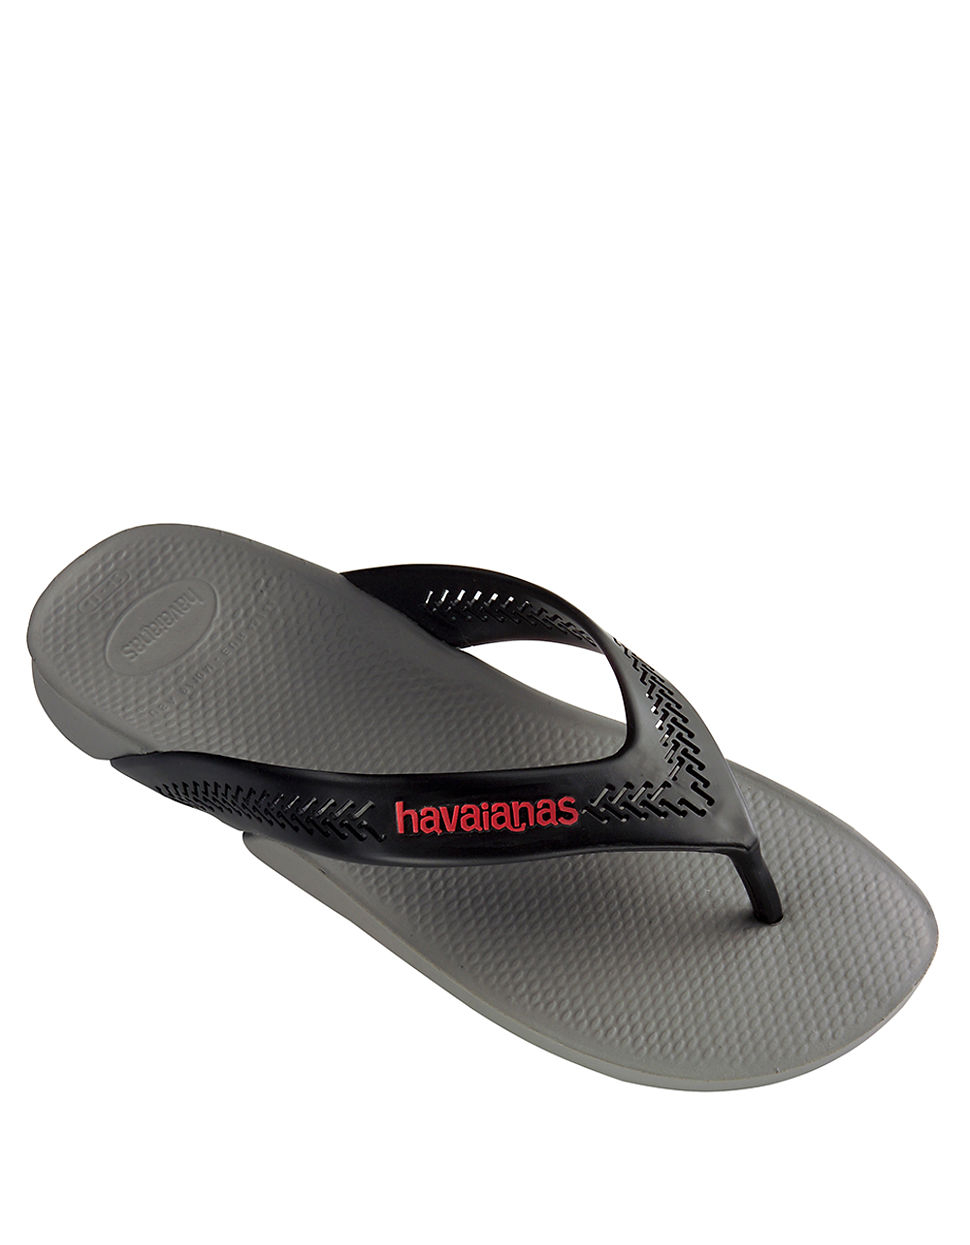 b4c87c3f8010ce Havaianas Wide Rubber Thong Sandals in Gray for Men - Lyst